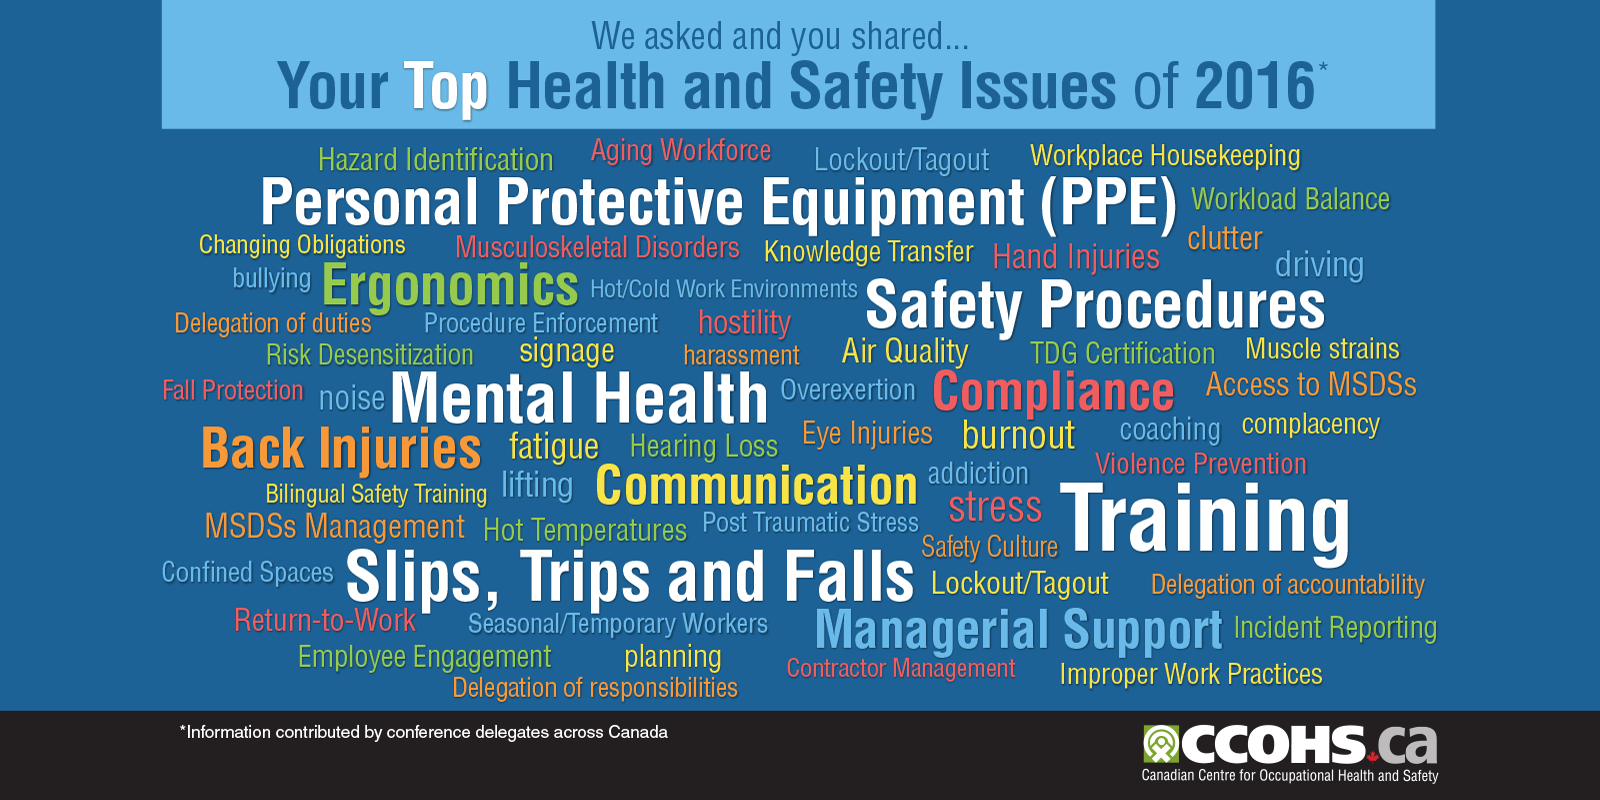 We asked and you shared. Your top Health and Safety Issues of 2016 (information contributed by conference delegates across Canada).